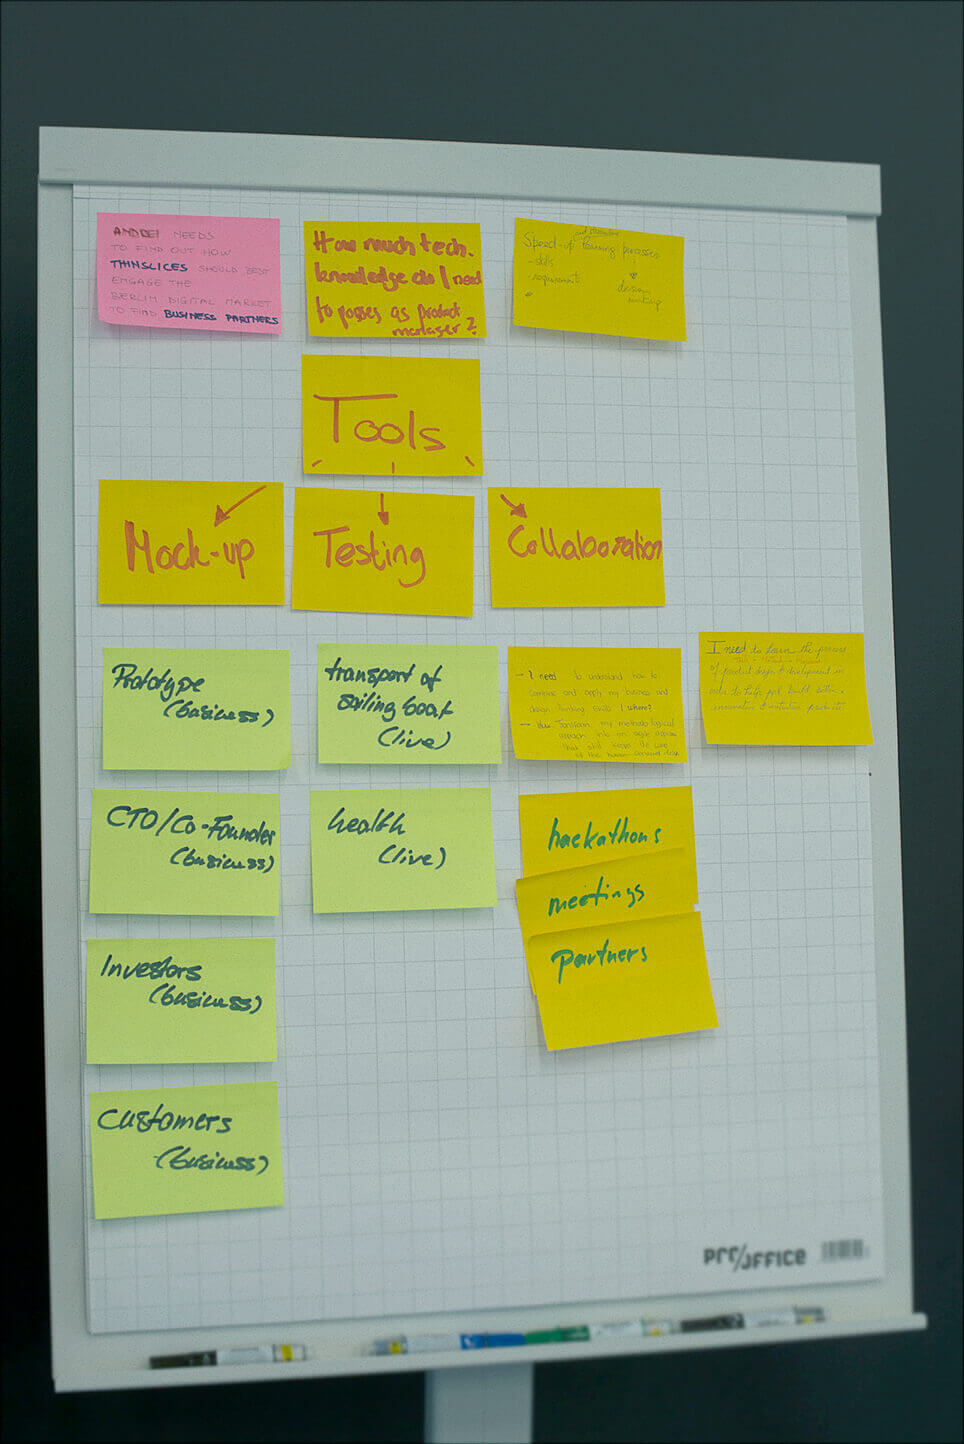 Berlin Workshop on Agile Partnerships